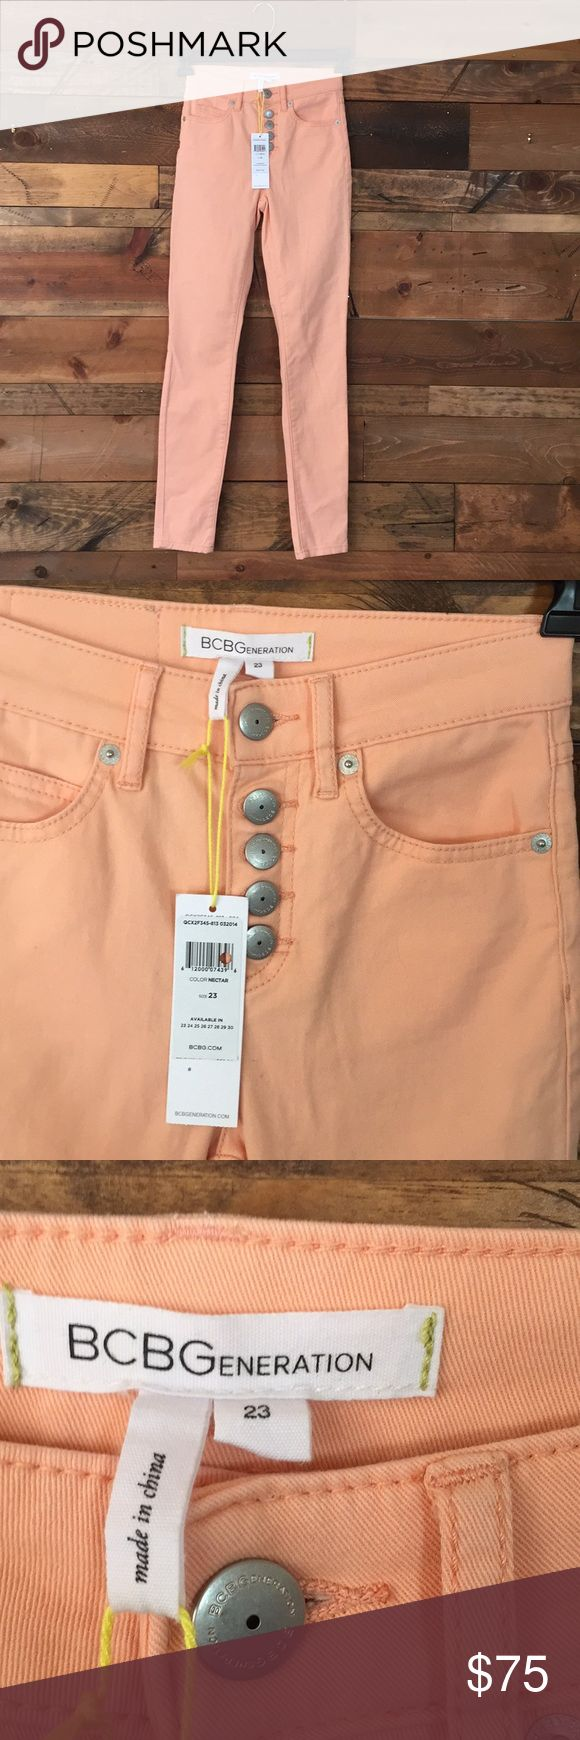 New BCBG peach colored Skinny Jeans Brand new with tags! Pretty peach color- great for spring and summer!!! Button front mid waist skinny jeans from BCBG store. Bought for my daughter and they didn't fit. Size 23 BCBG Jeans Skinny